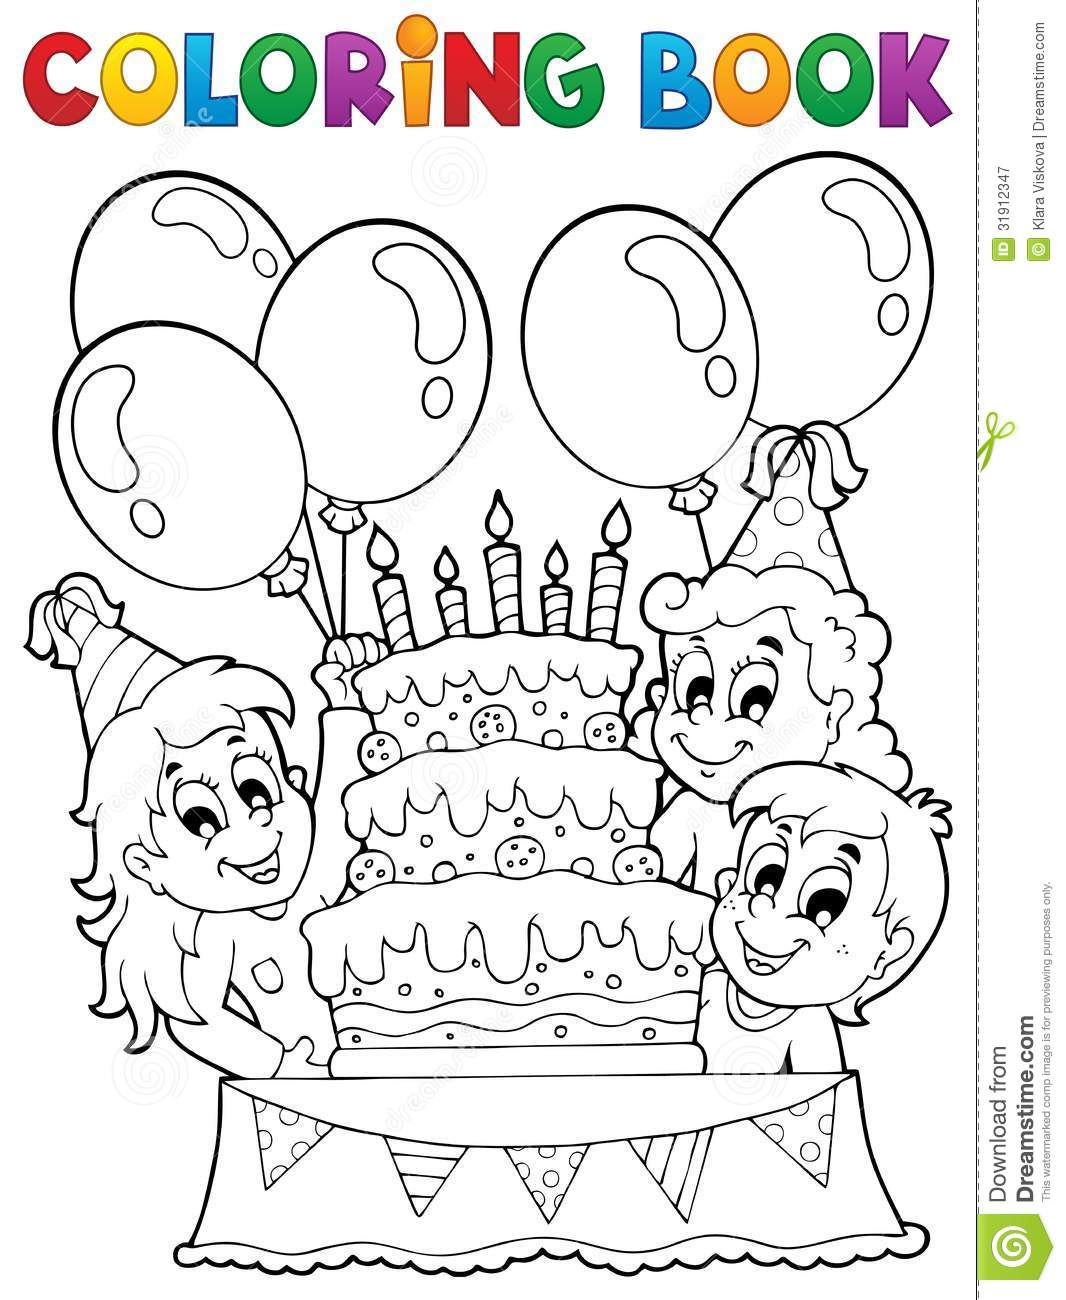 1066x1300 free kids drawing wallpaper download - Coloring Book For Kids Free